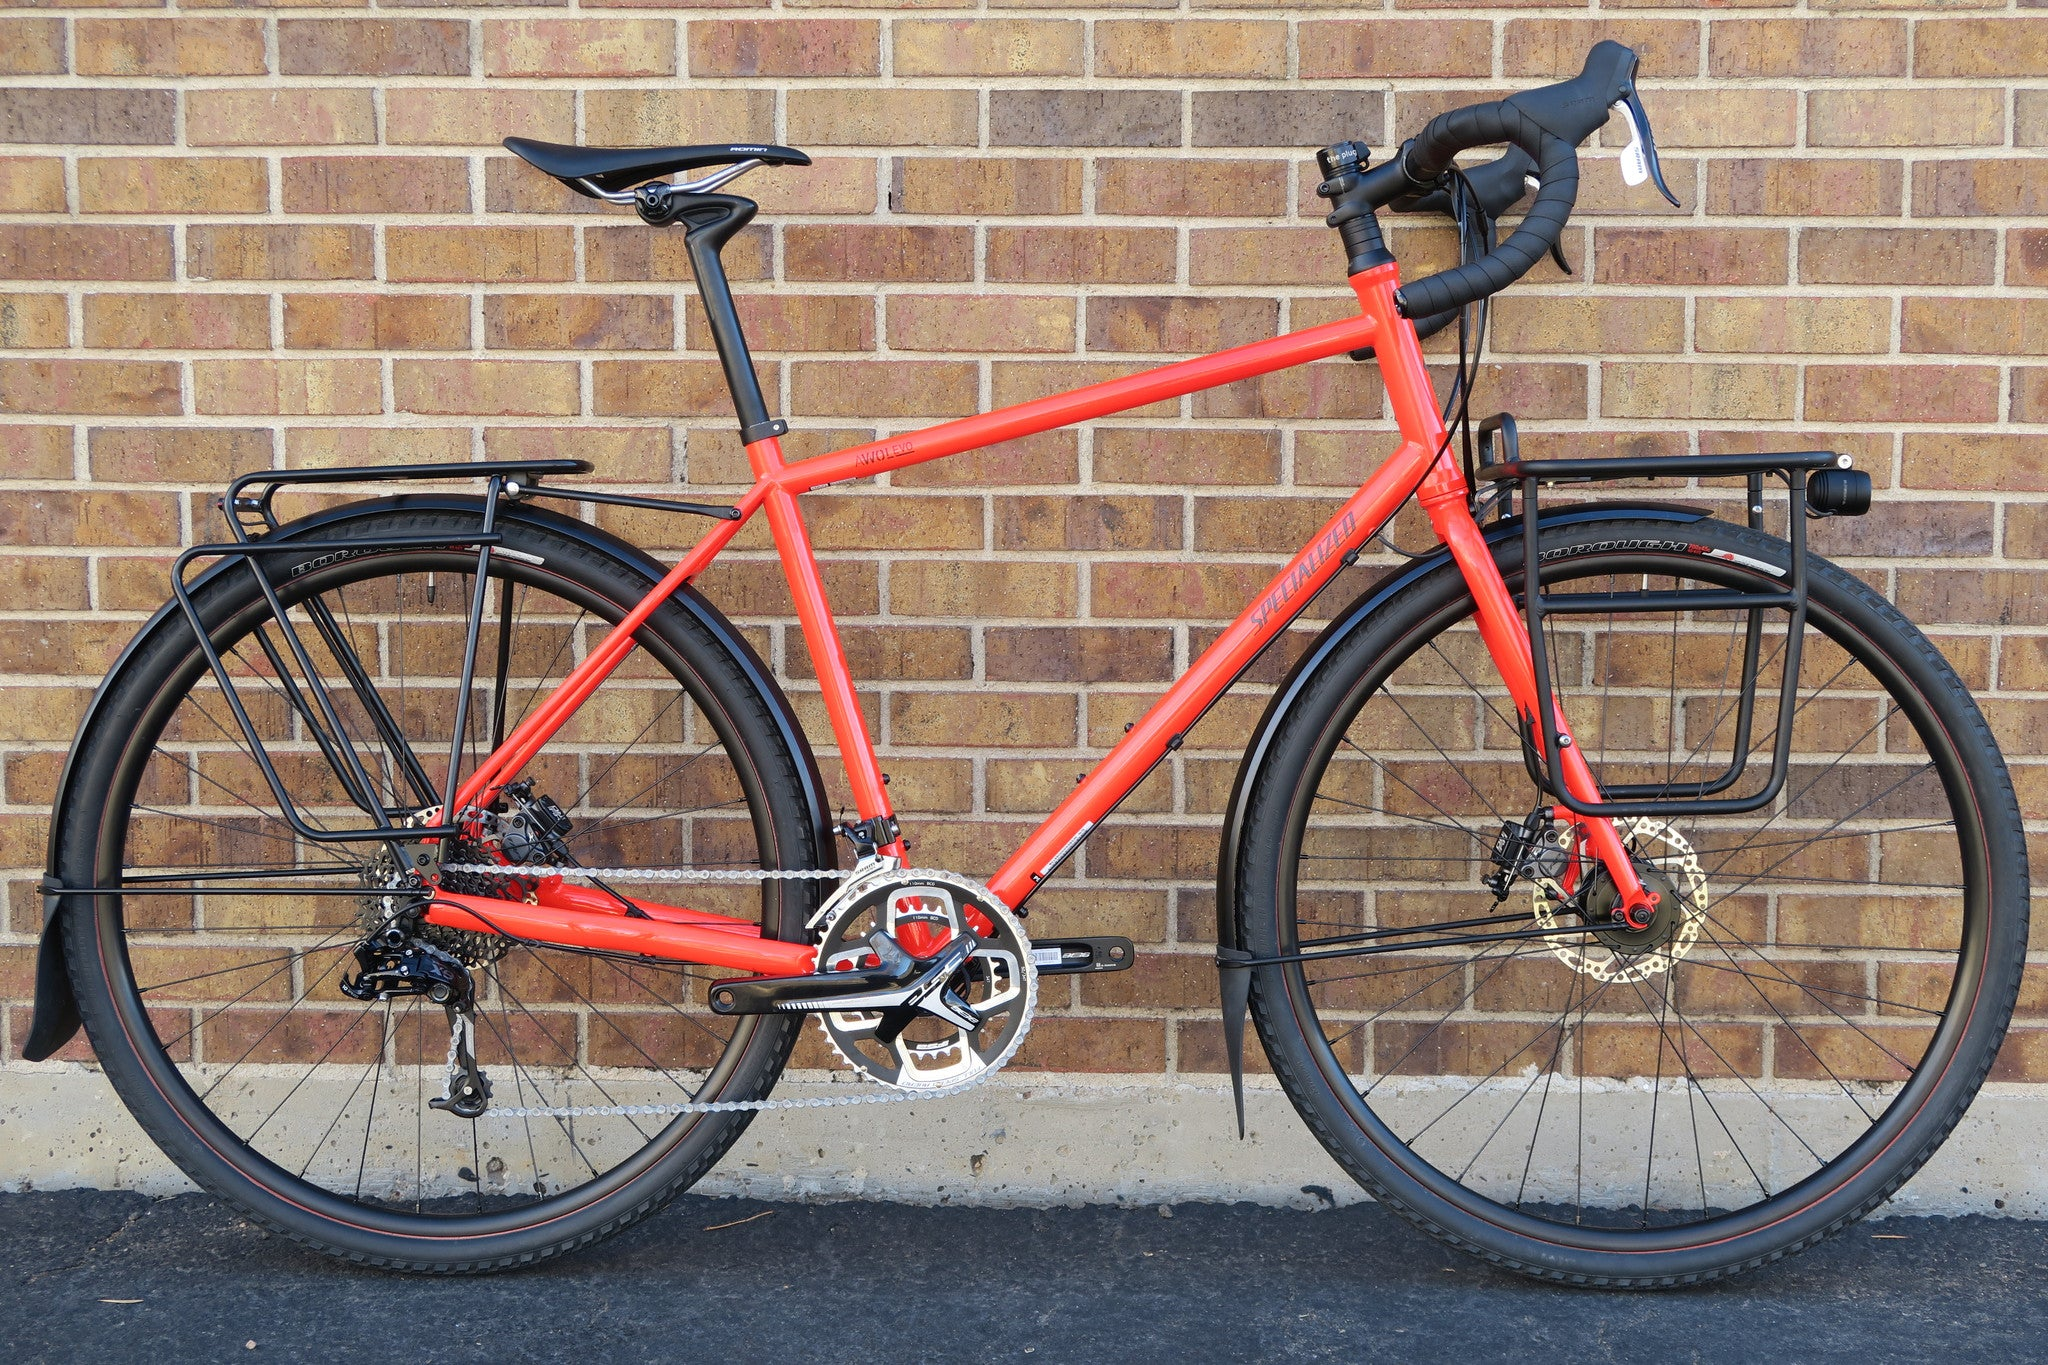 2016 SPECIALIZED AWOL EVO ADVENTURE TOURING BIKE